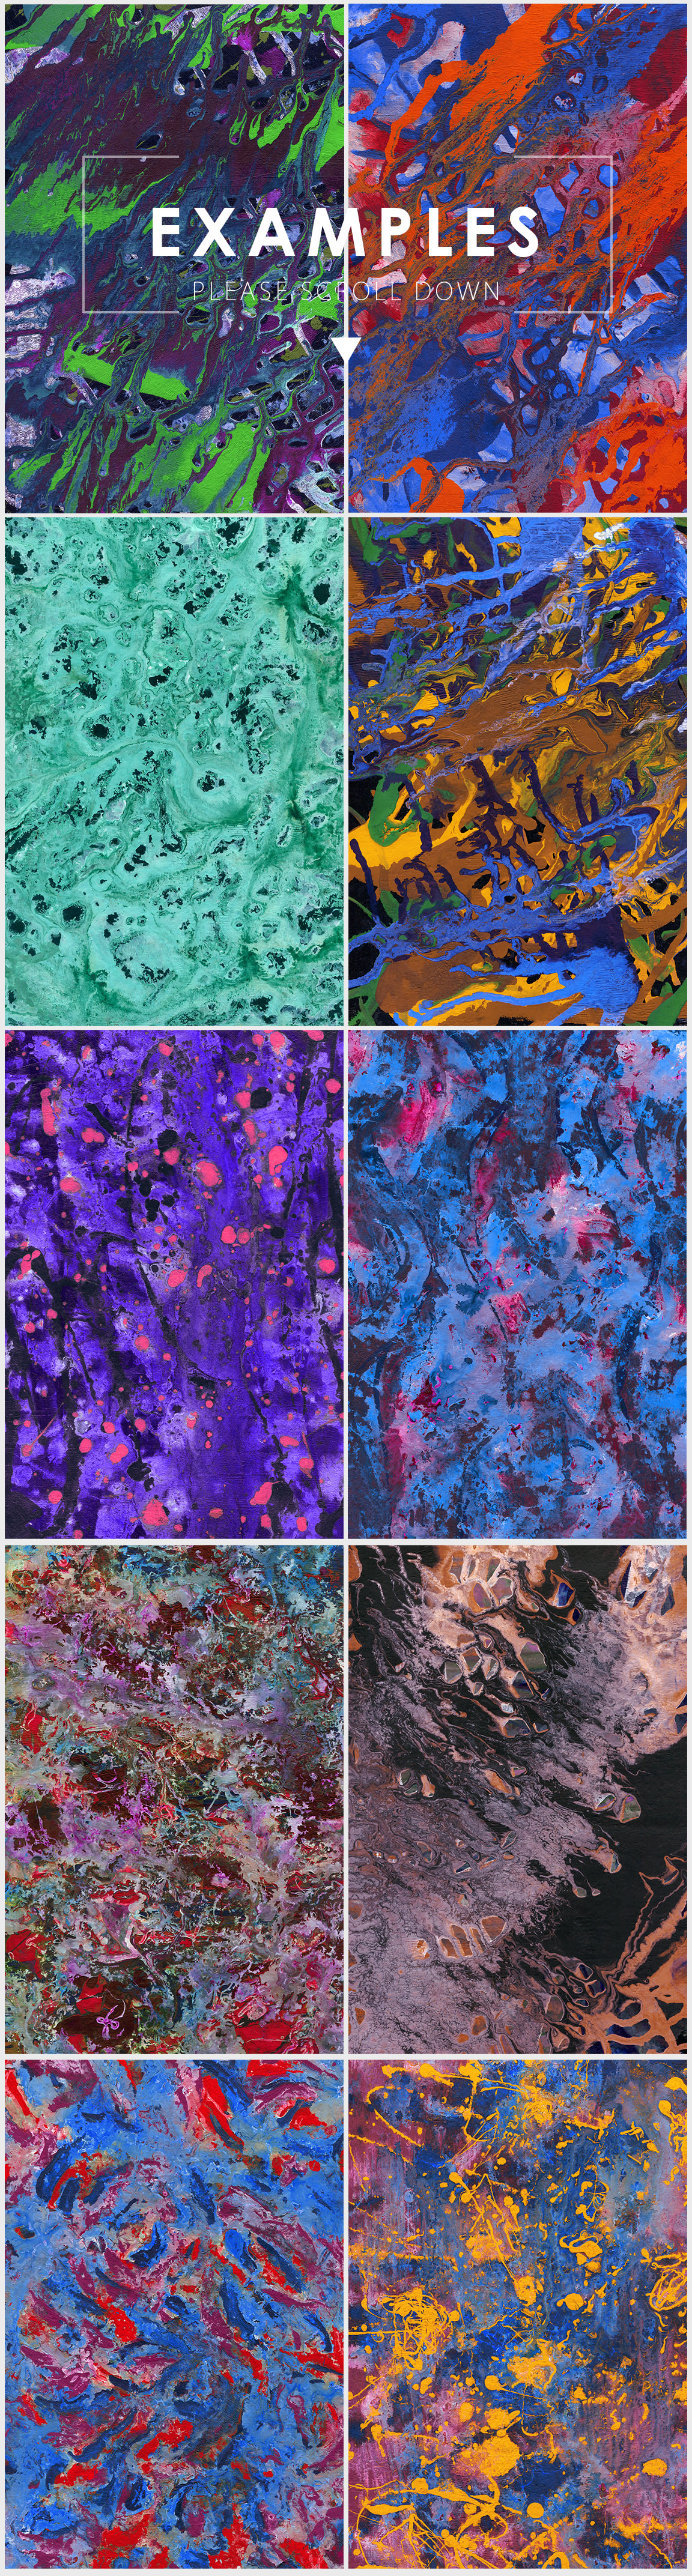 Abstract Paint Backgrounds Vol.3 example image 5